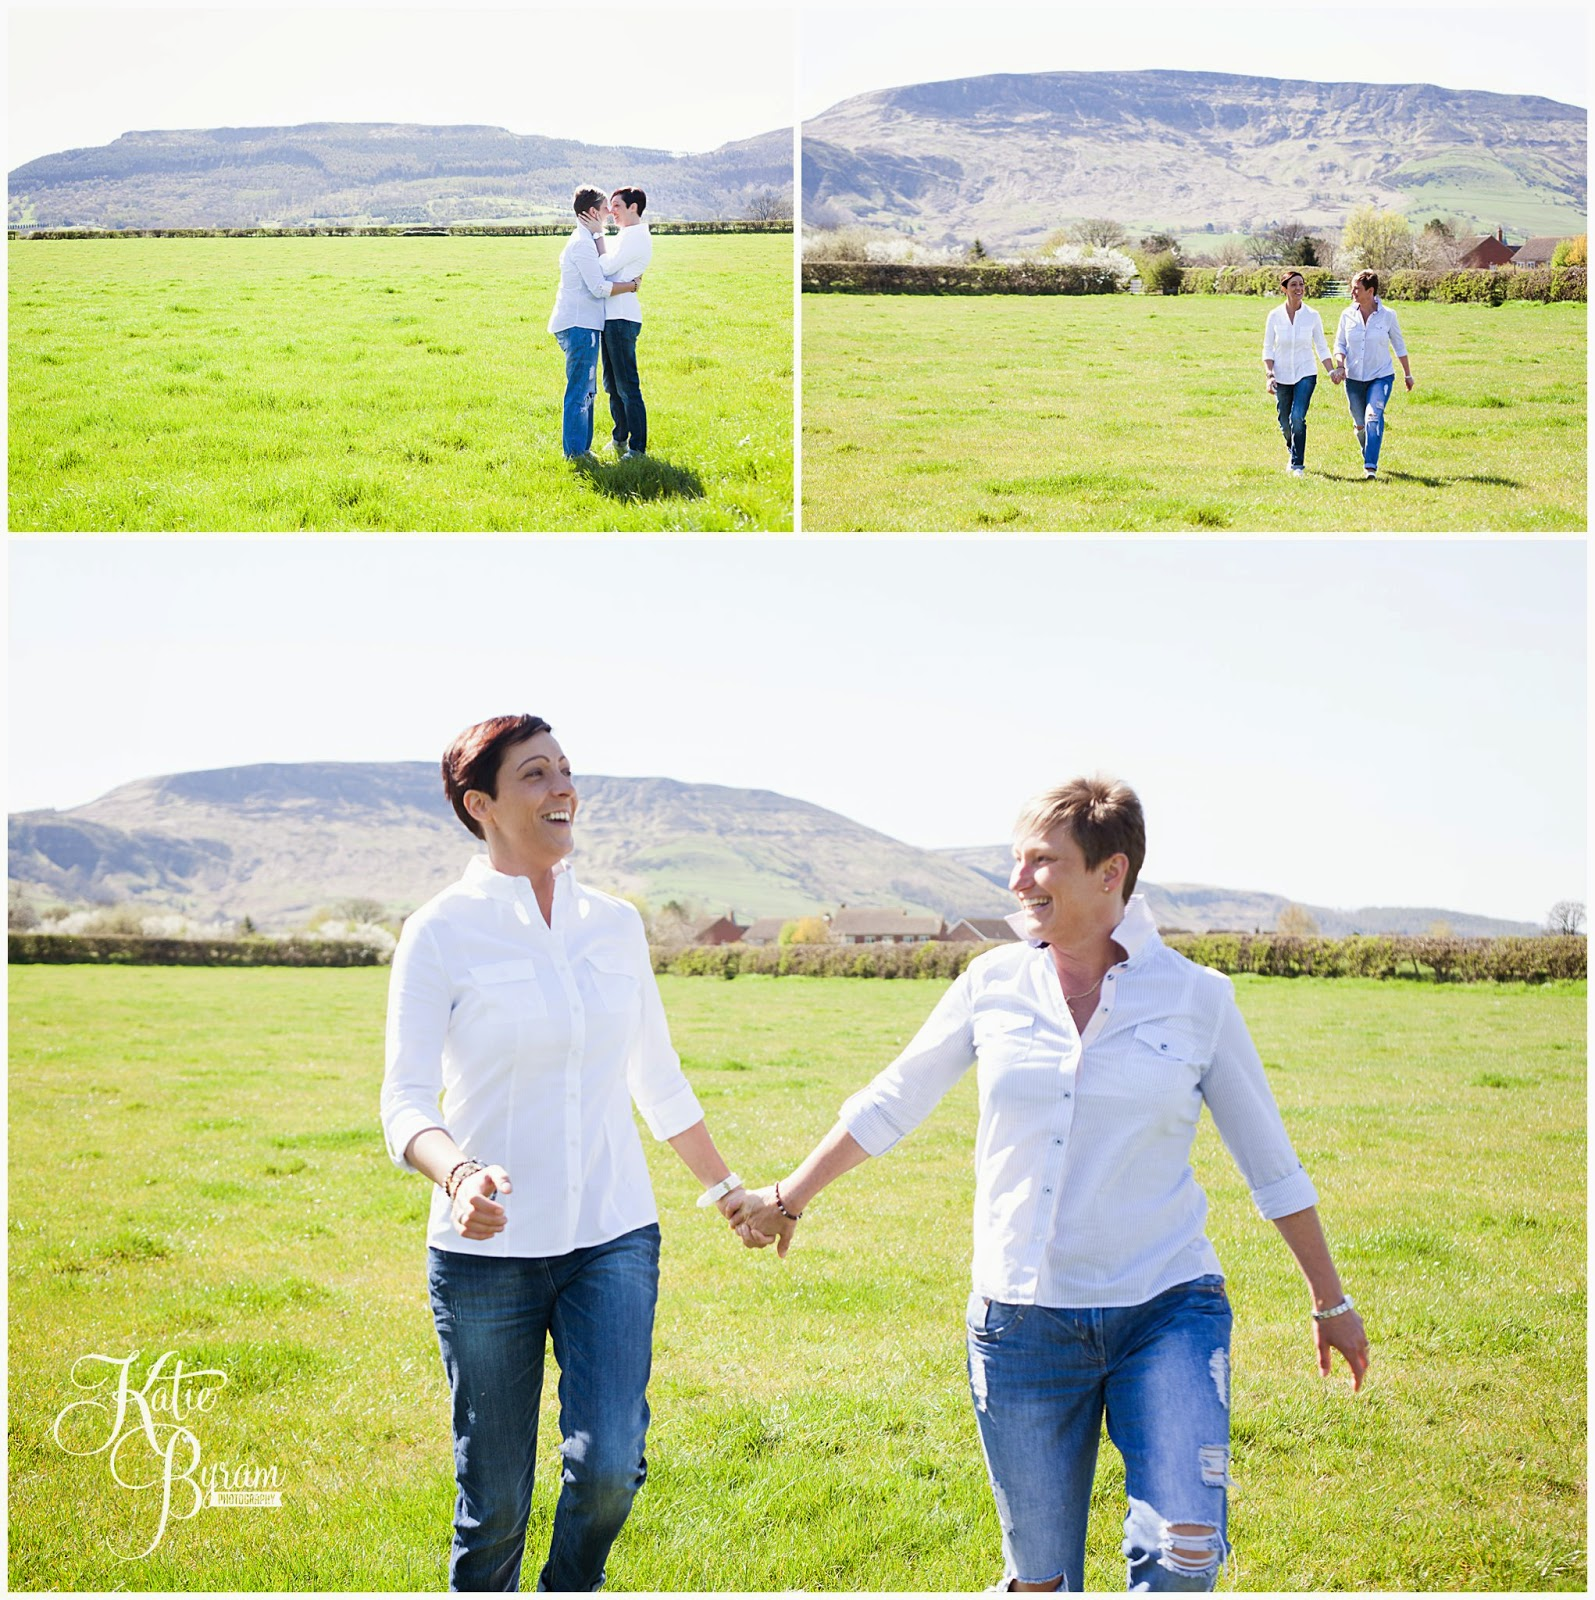 gay wedding photographer, same-sex couples, civil partnership, civil partnership photography,  same-sex engagement, lesbian wedding, lesbian engagement shoot, pre-wedding shoot, katie byram photography, mrs & mrs, two bride wedding, gay wedding, gay engagement, gisborough hall, north yorkshire wedding photographer